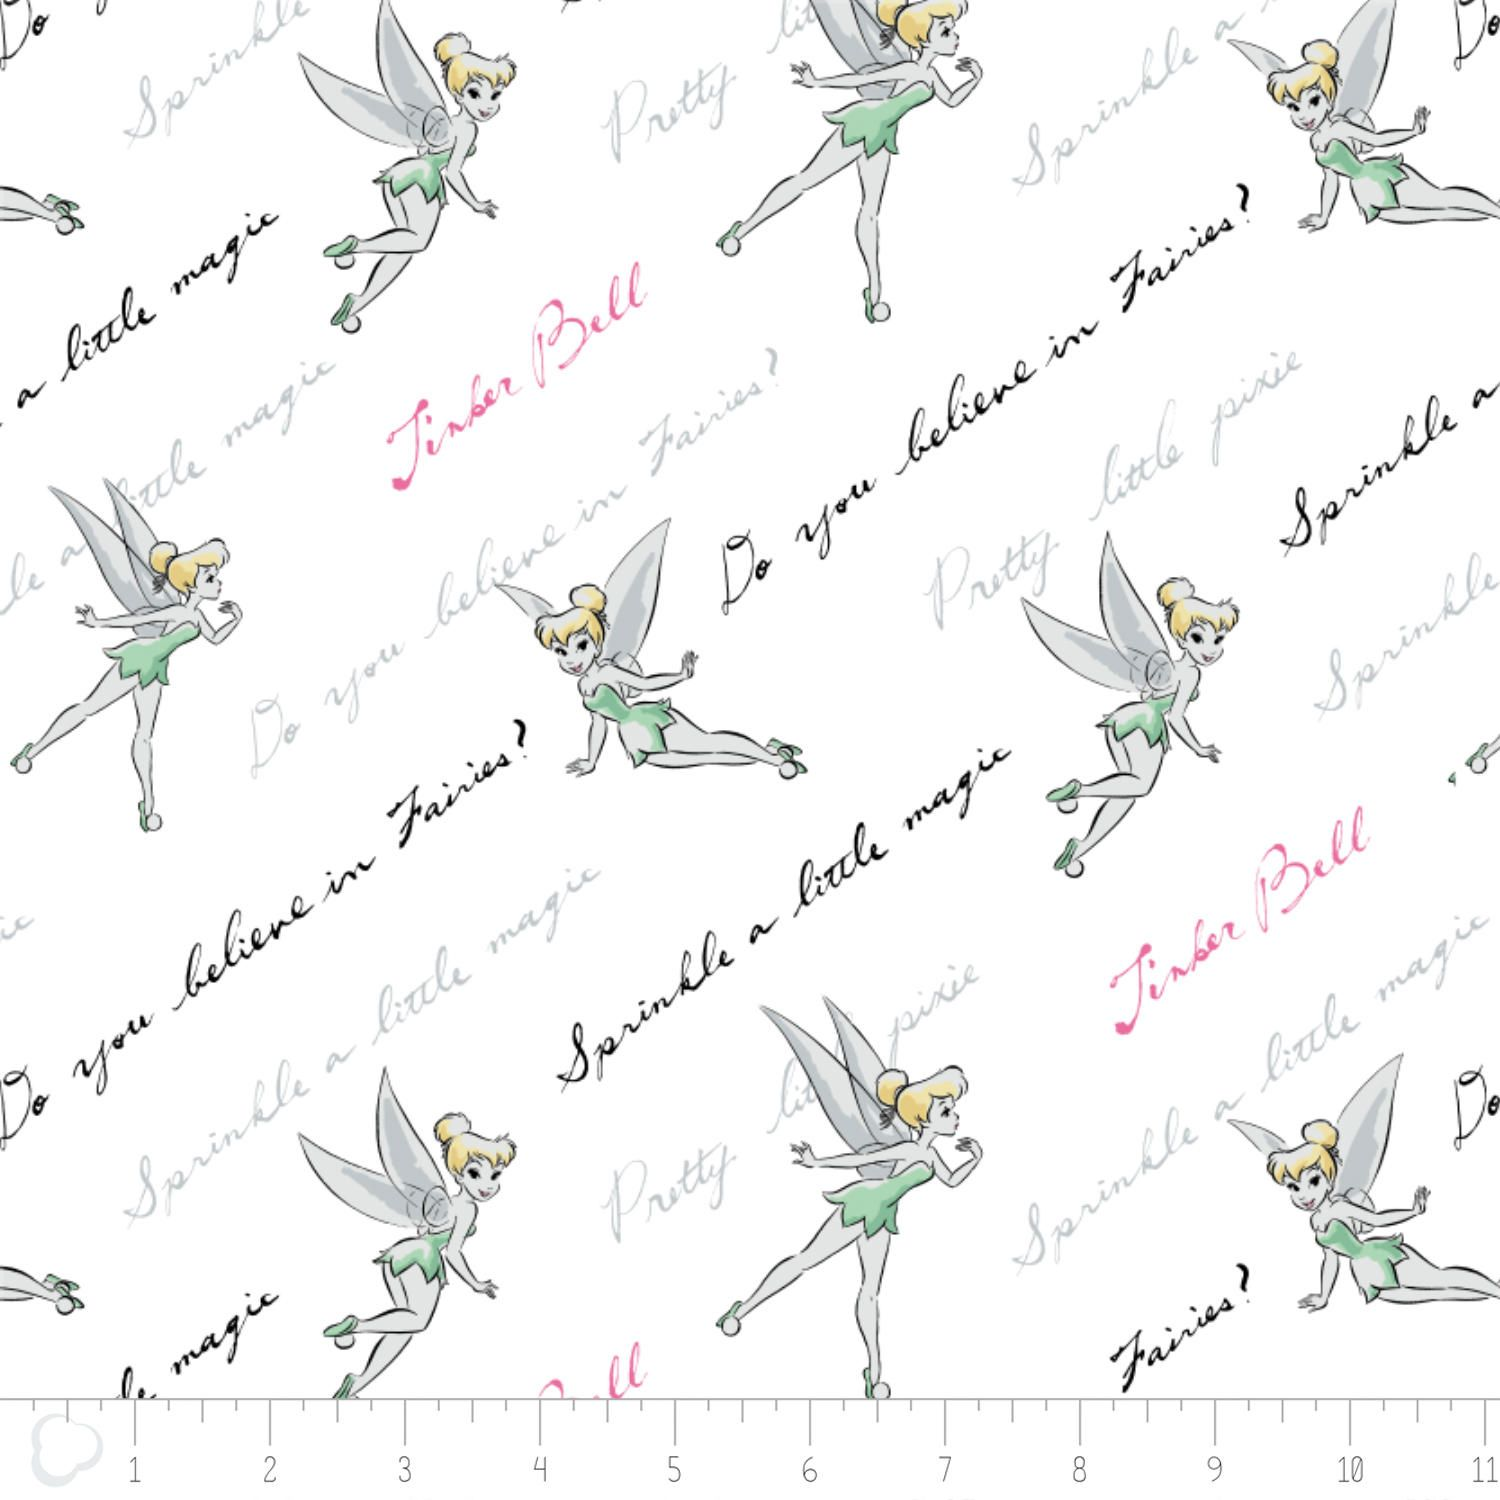 Tink Fabric / Do You Believe? In Minty / Tinkerbell on